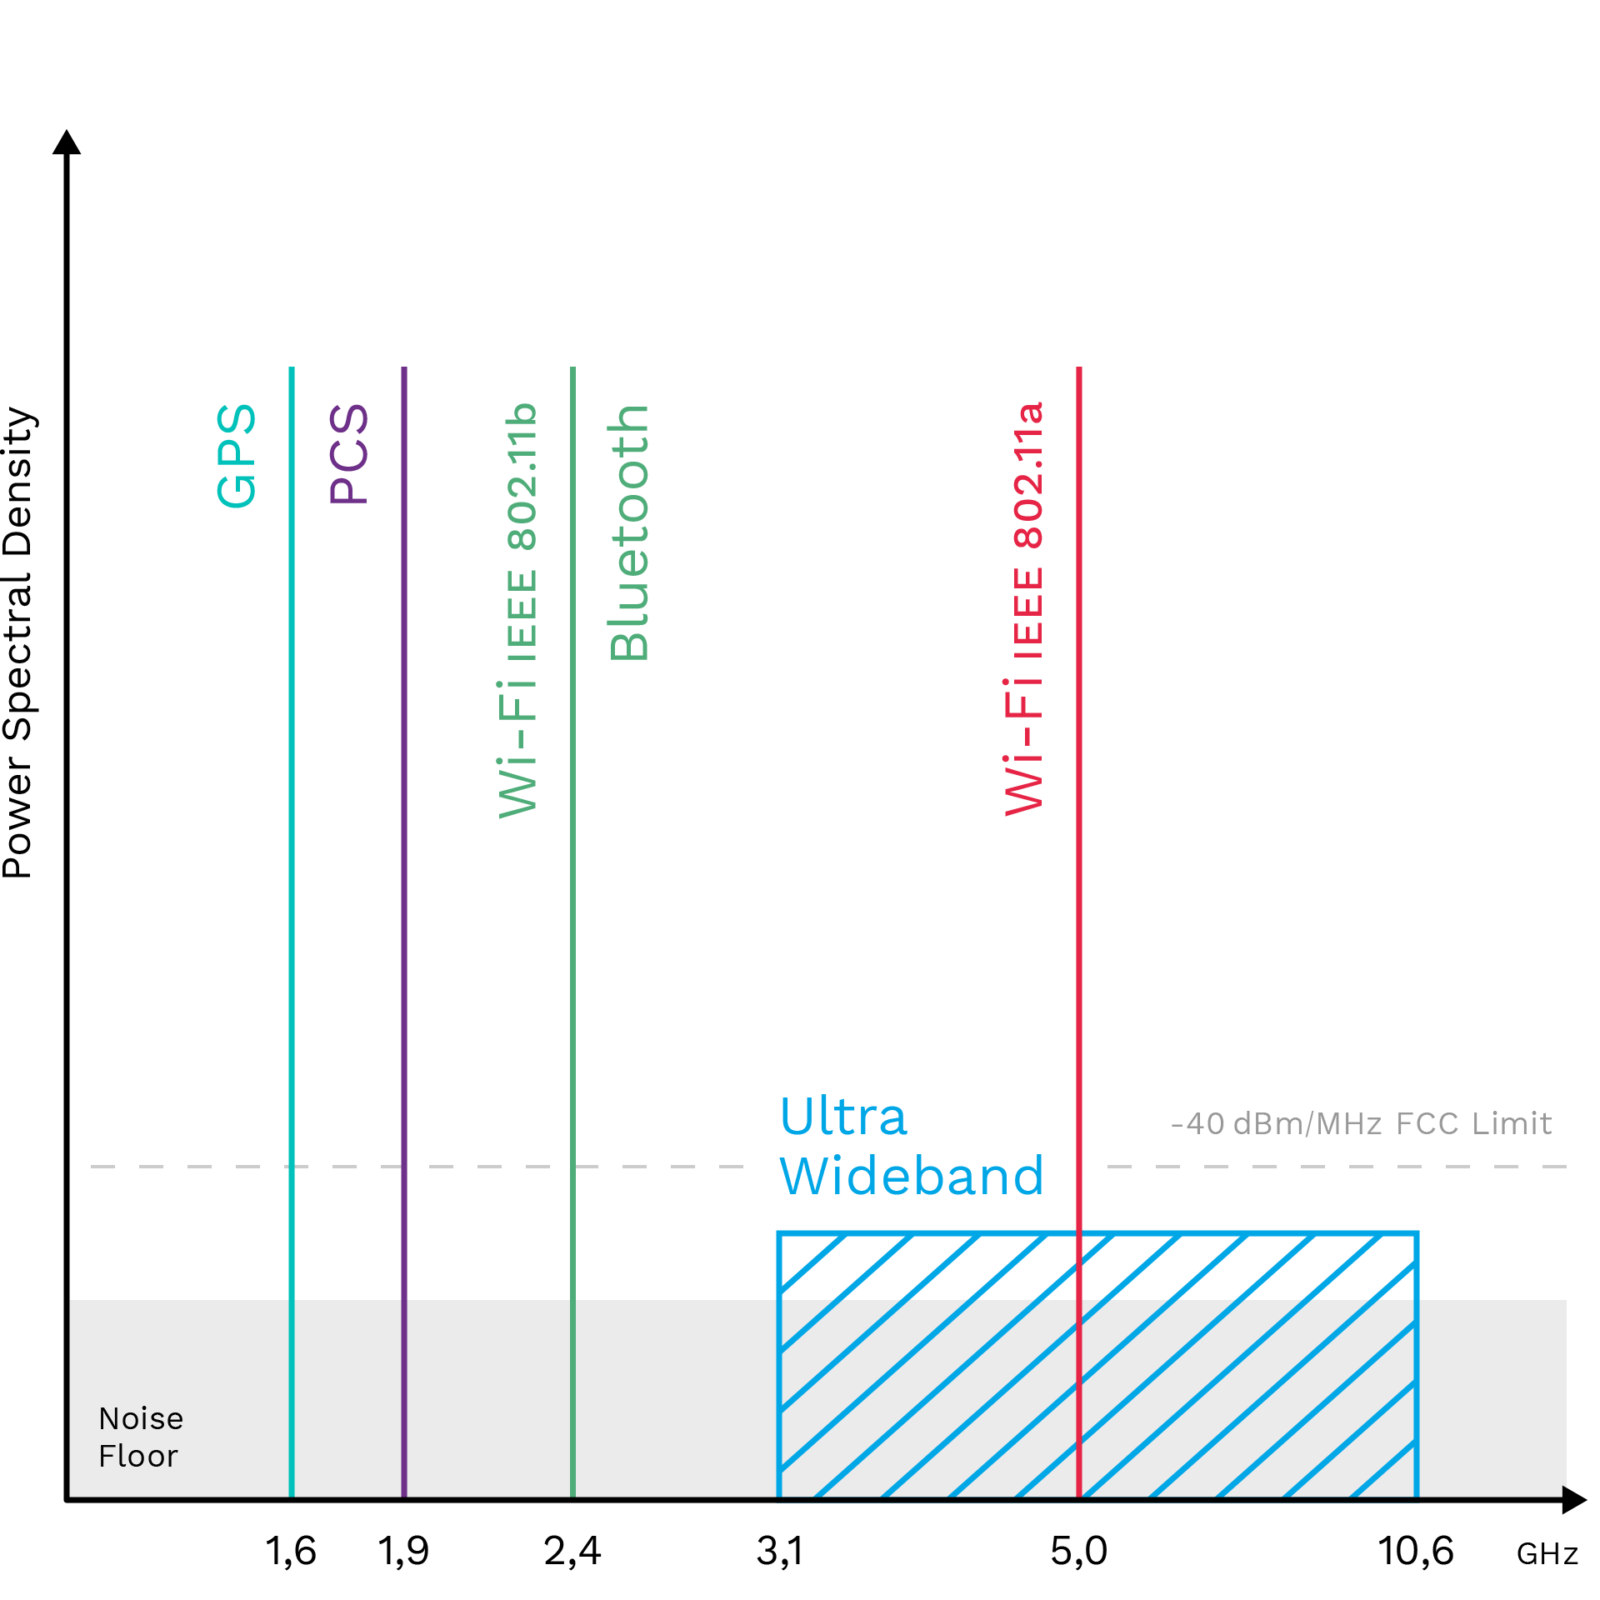 Ultra broadband UWB frequency range